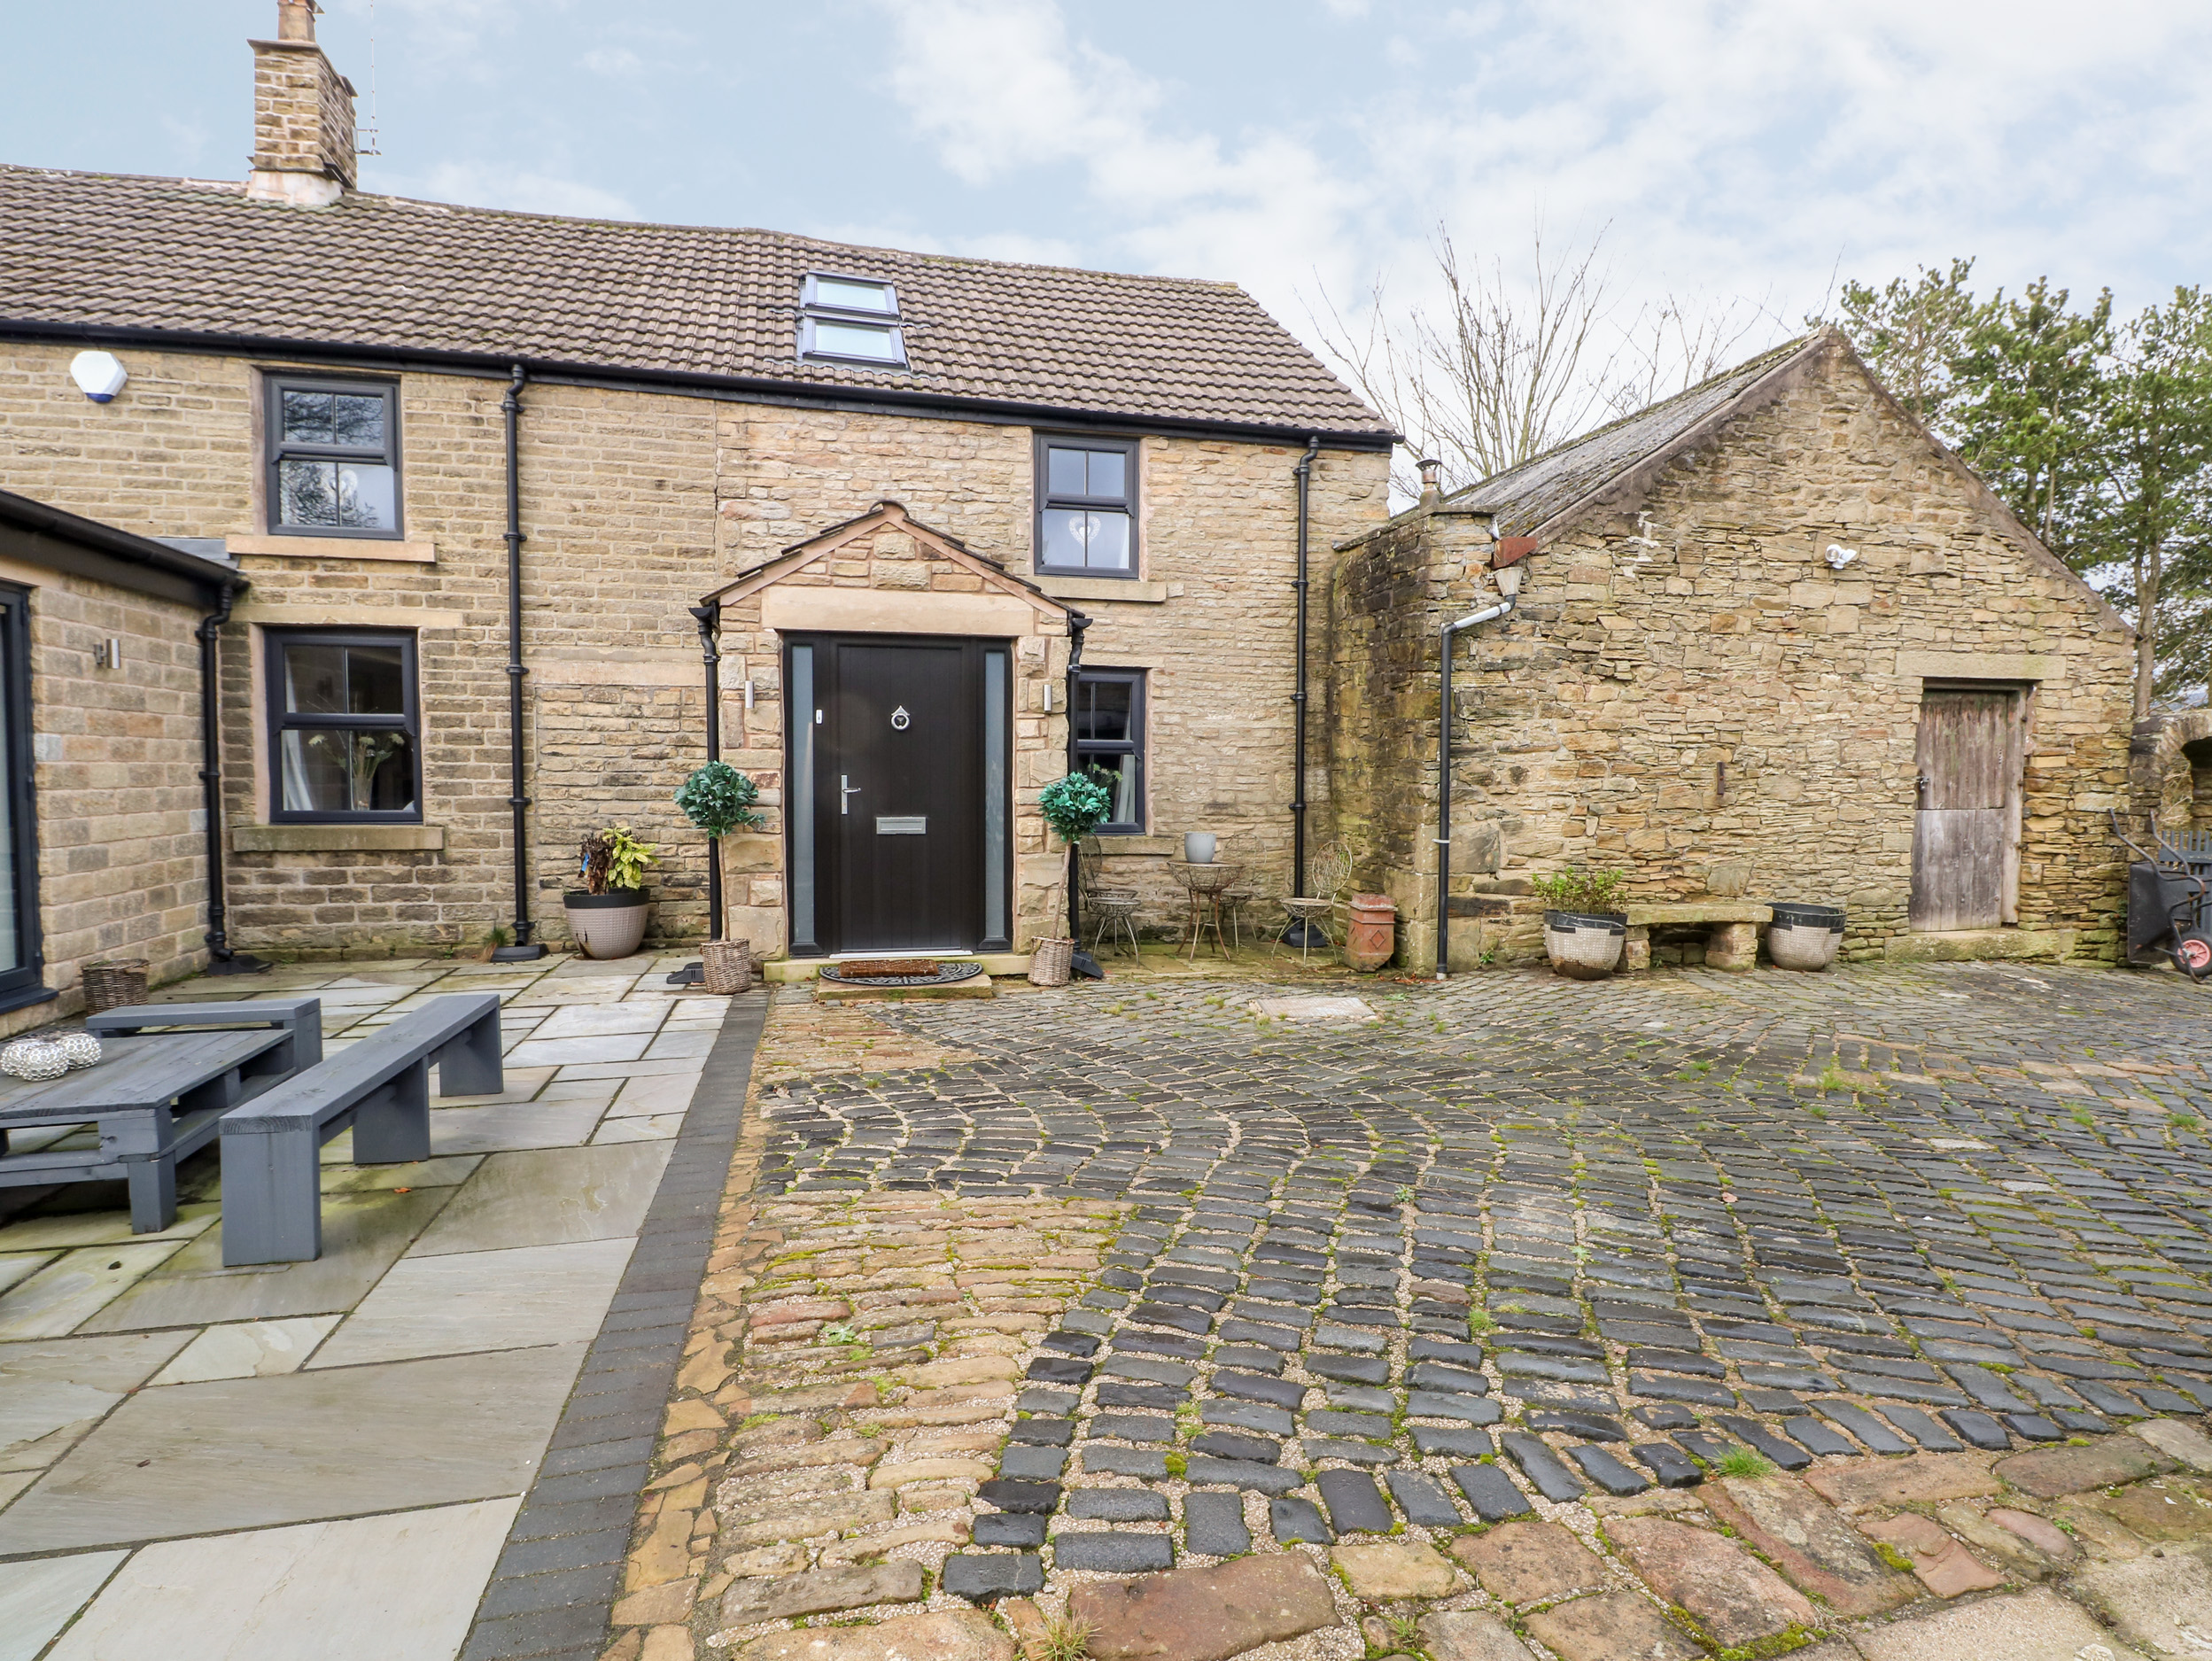 5 bedroom Cottage for rent in Glossop